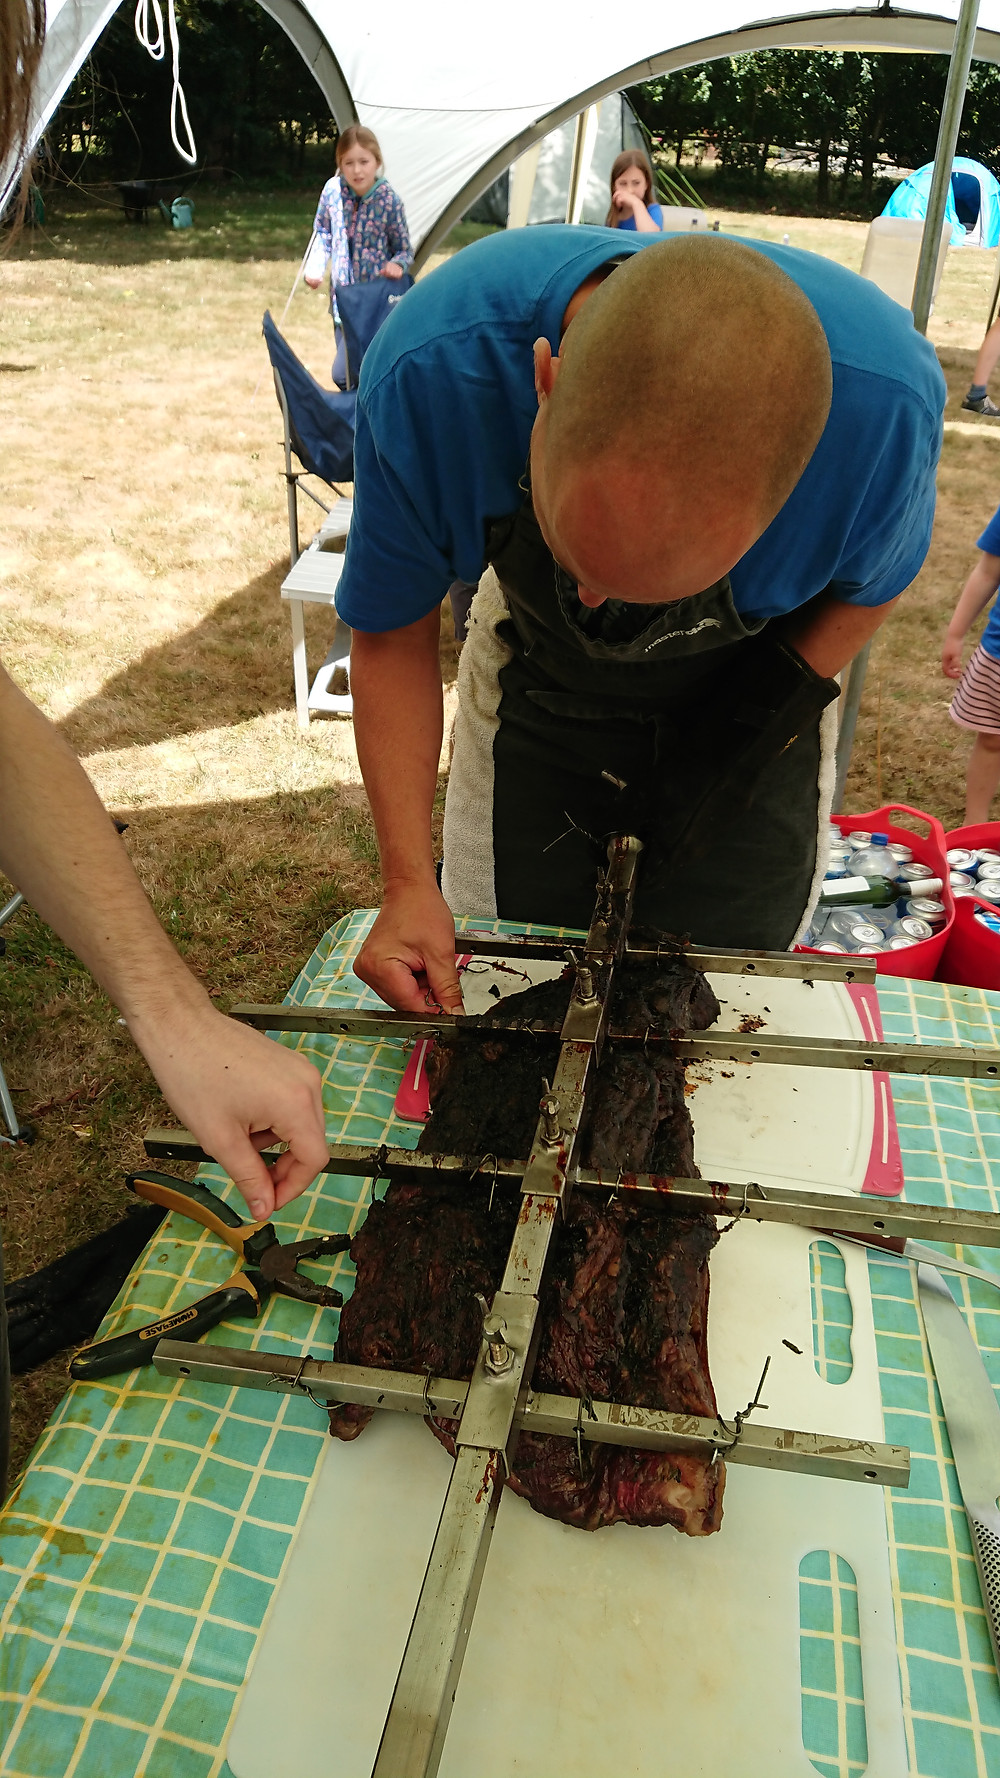 Pliers required to unwire the brisket